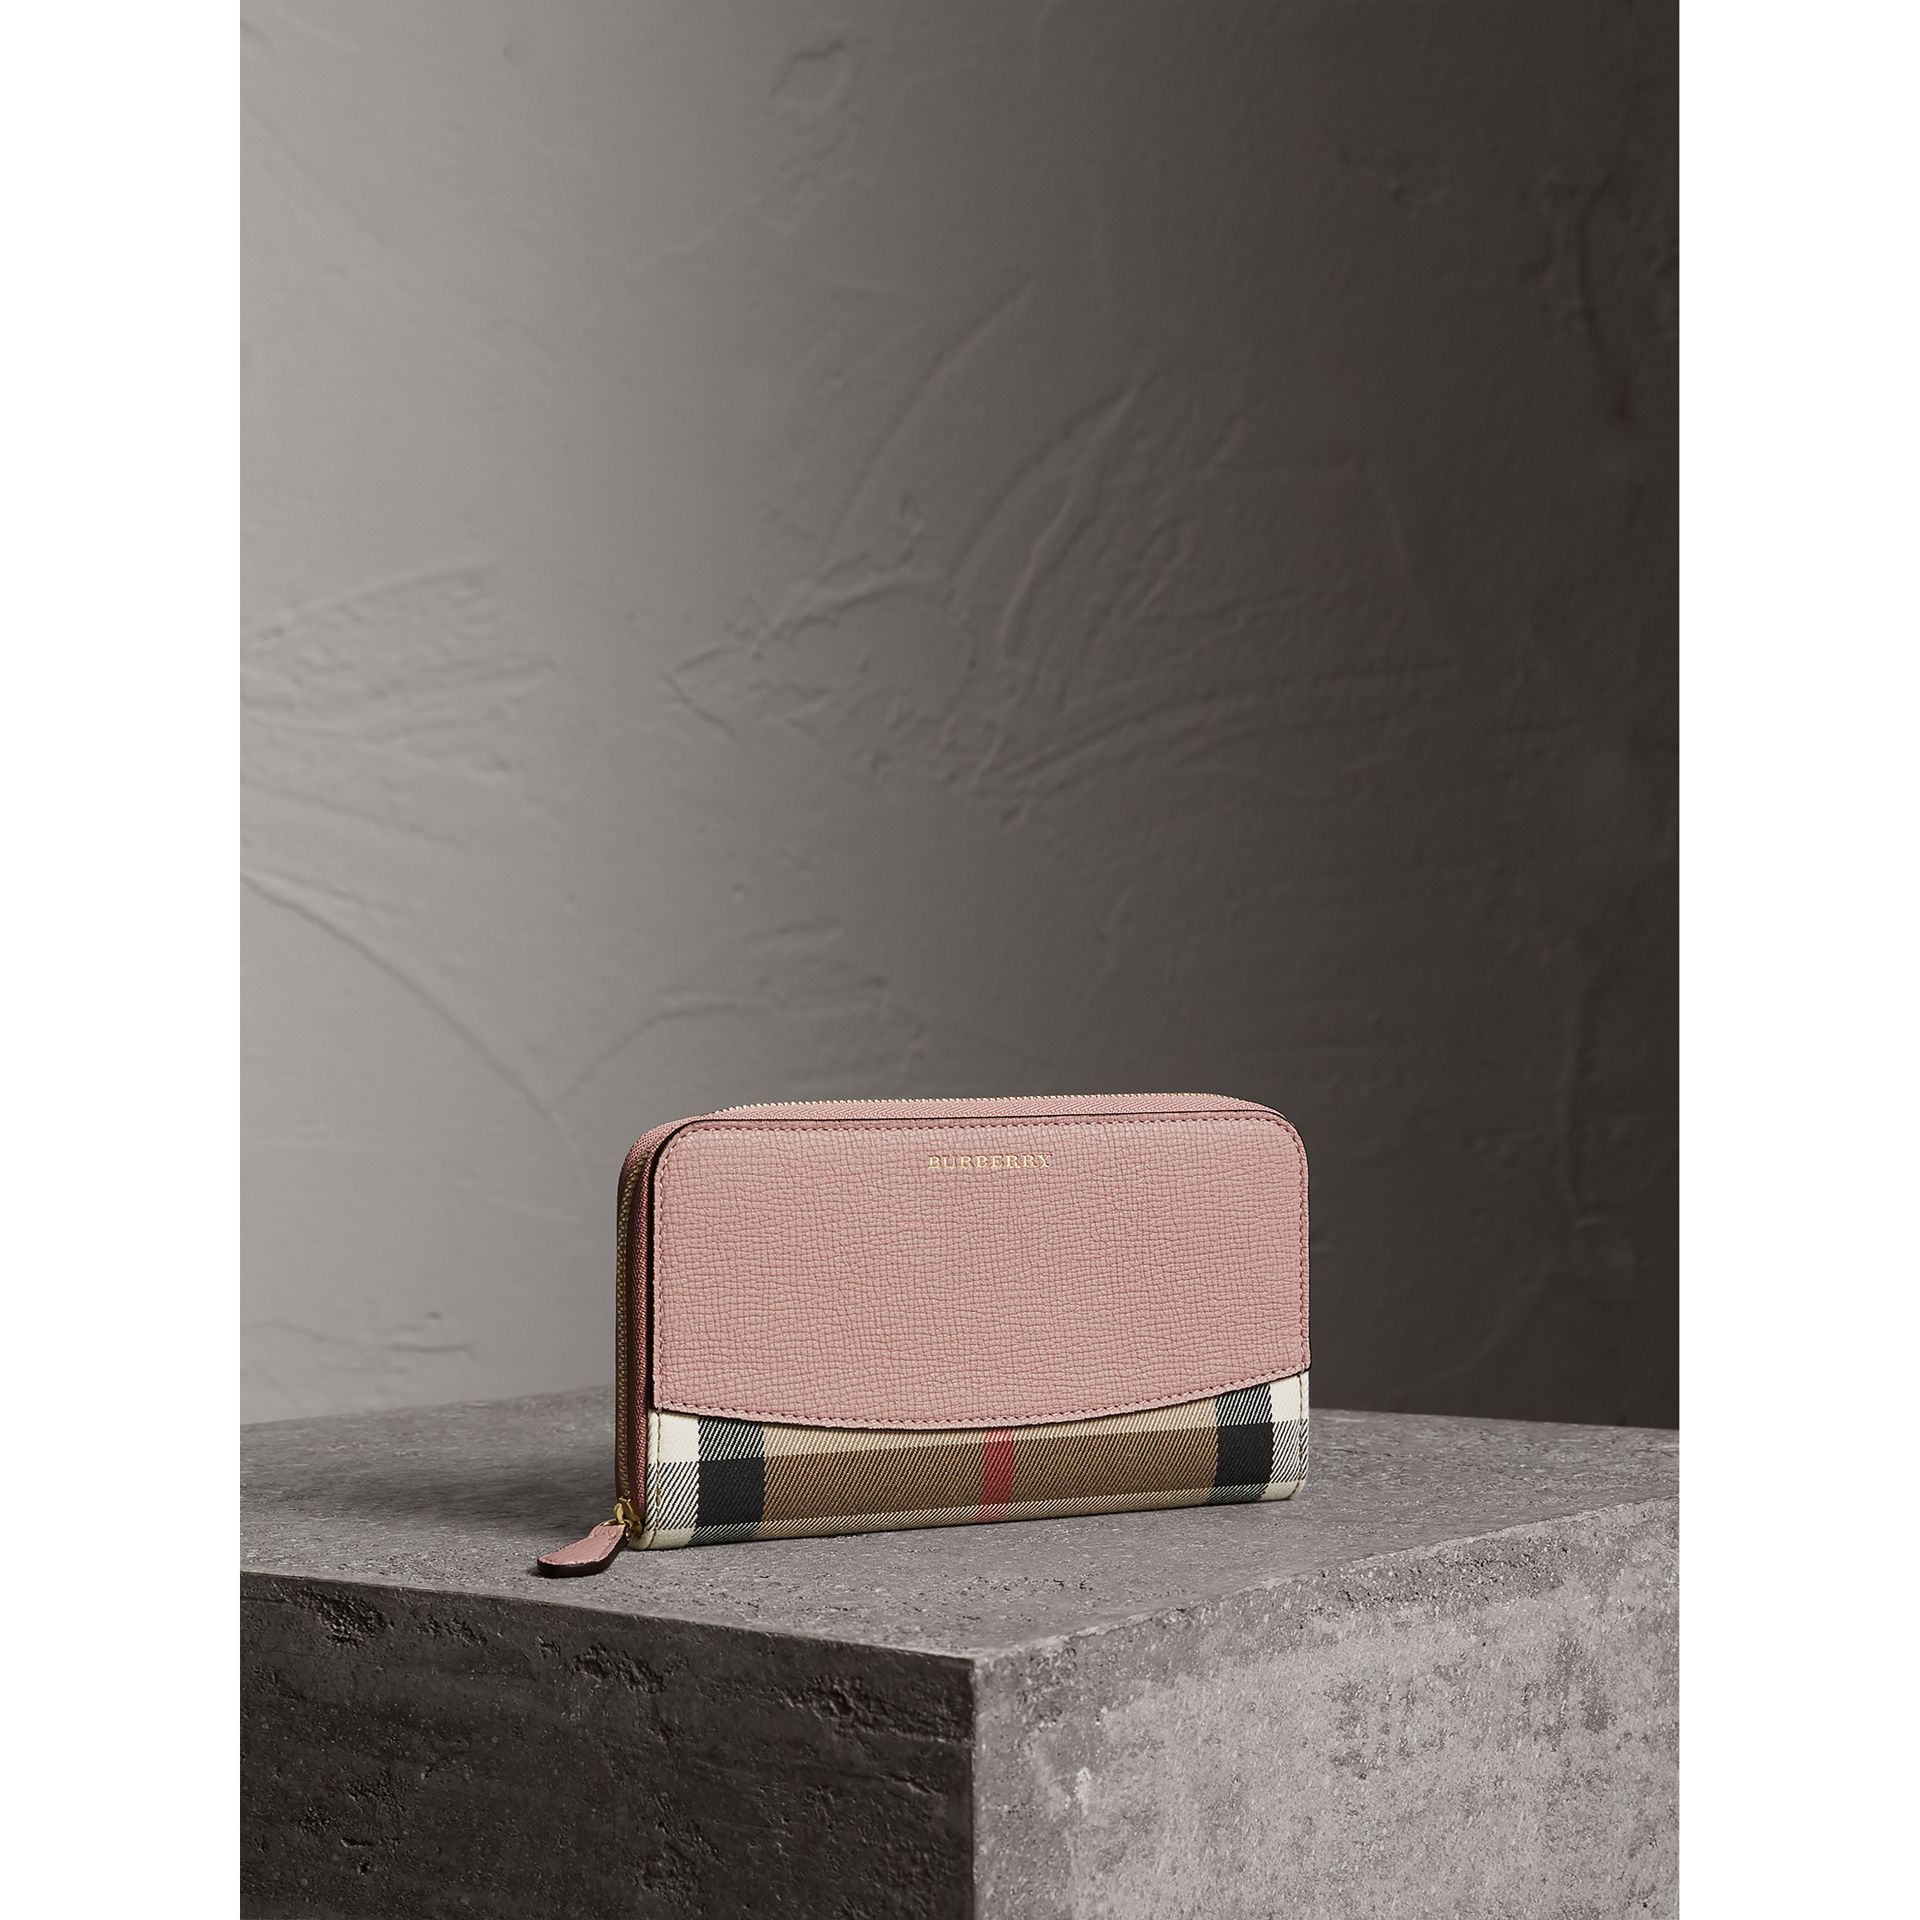 House Check and Leather Ziparound Wallet in Pale Orchid - Women | Burberry Hong Kong - gallery image 1